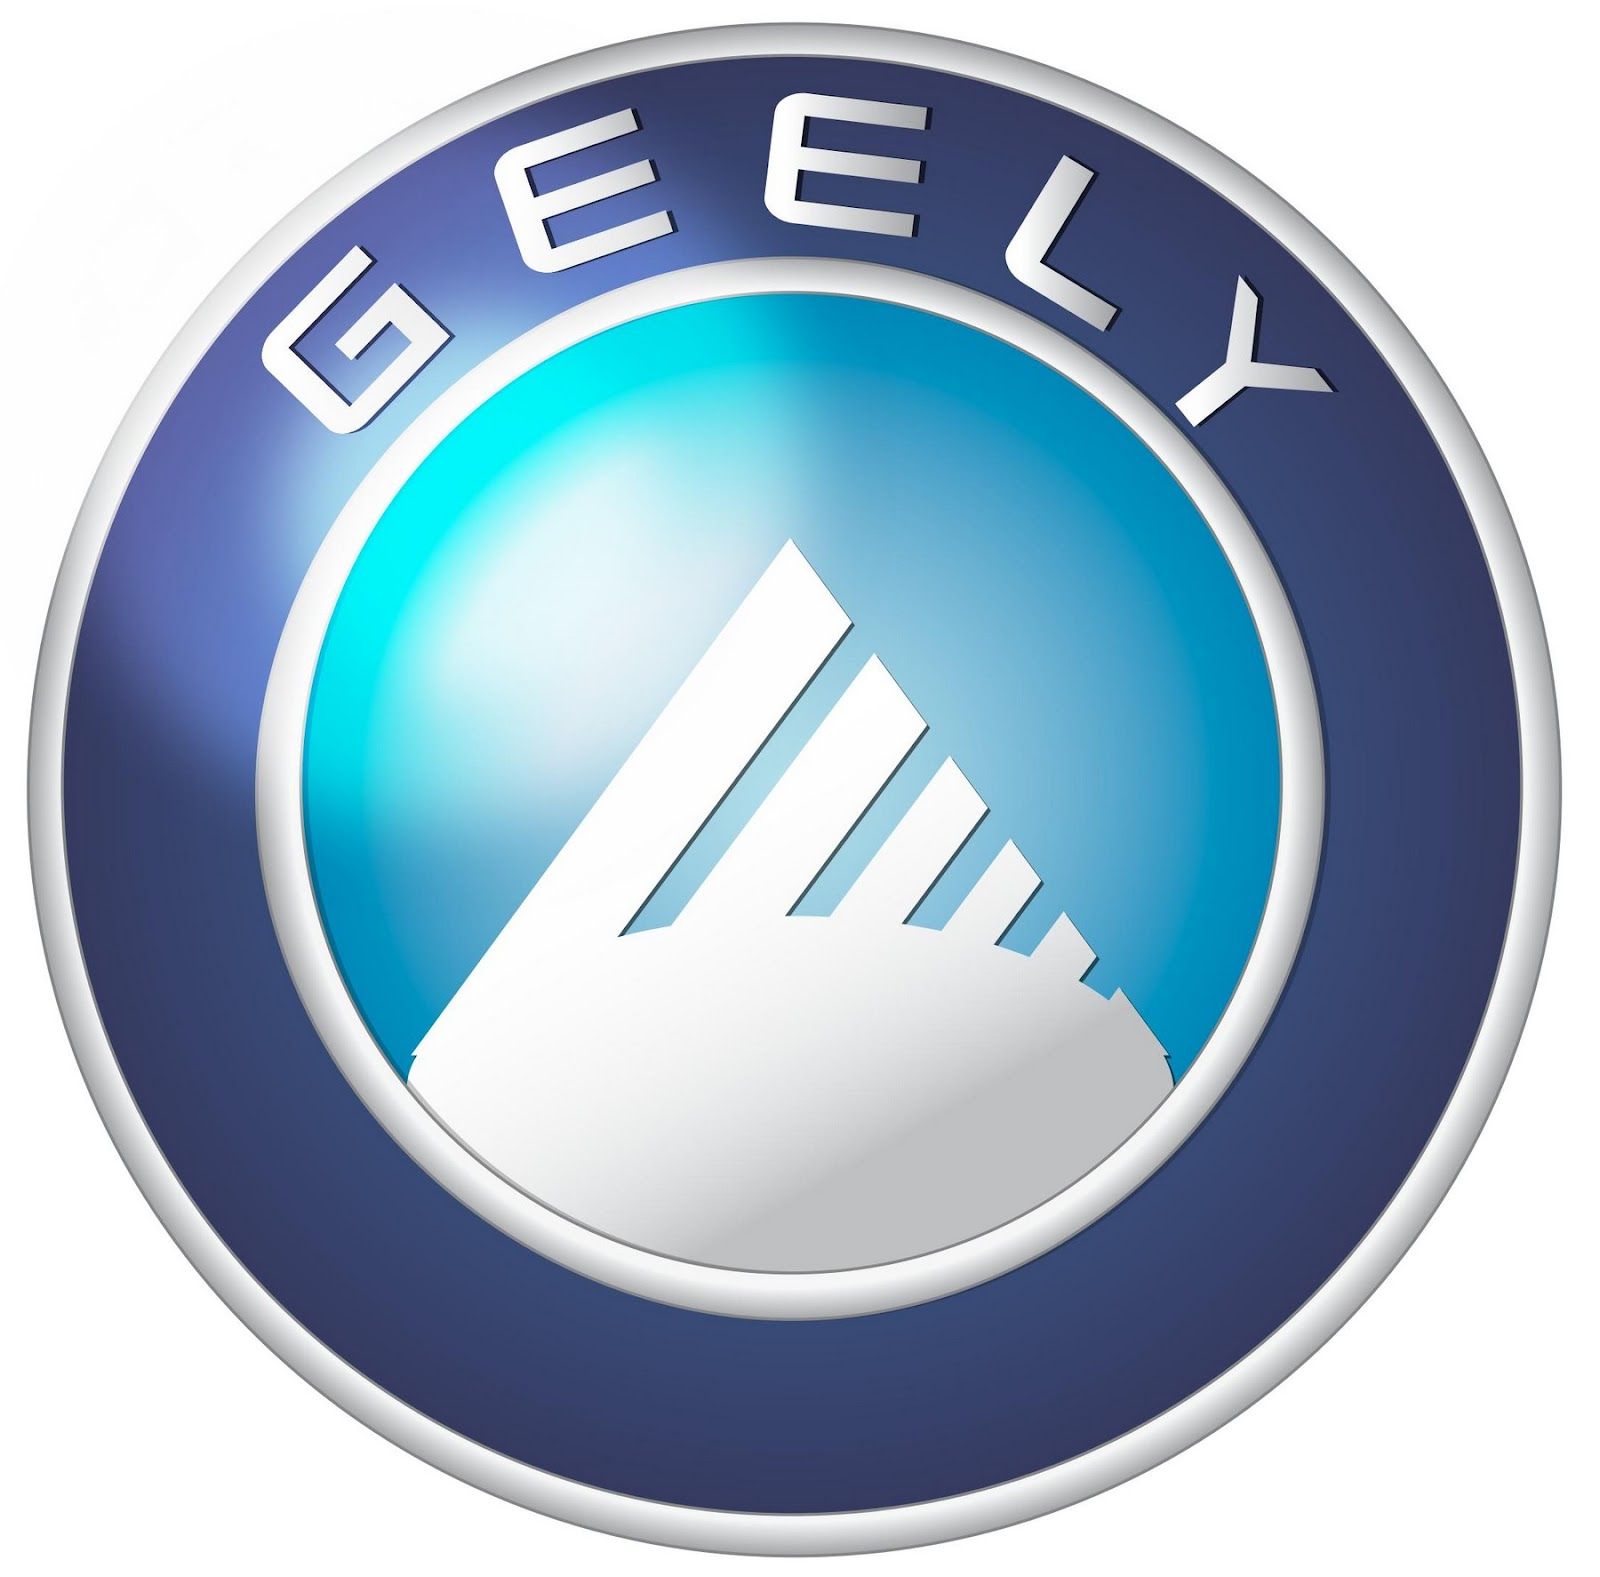 Geely to start selling Volvo co-developed vehicles